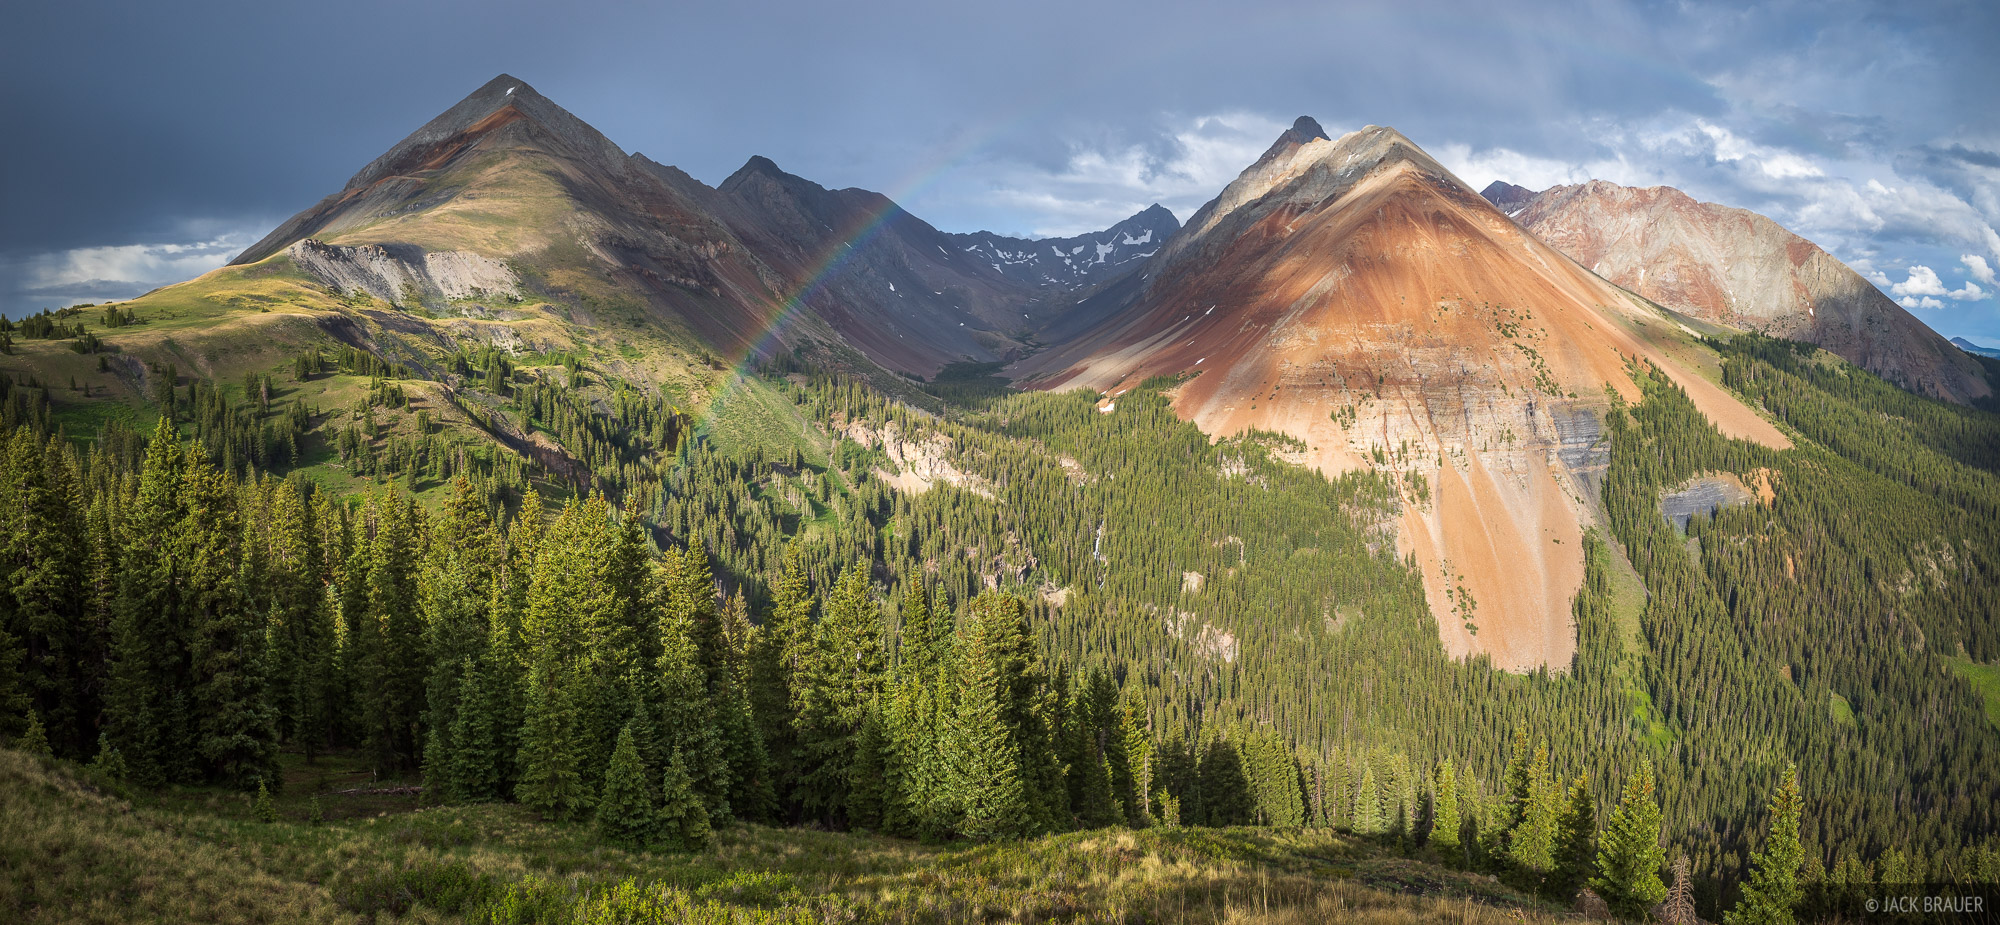 Colorado, El Diente, Gladstone Peak, Lizard Head Wilderness, San Juan Mountains, San Miguel Range, rainbow, photo